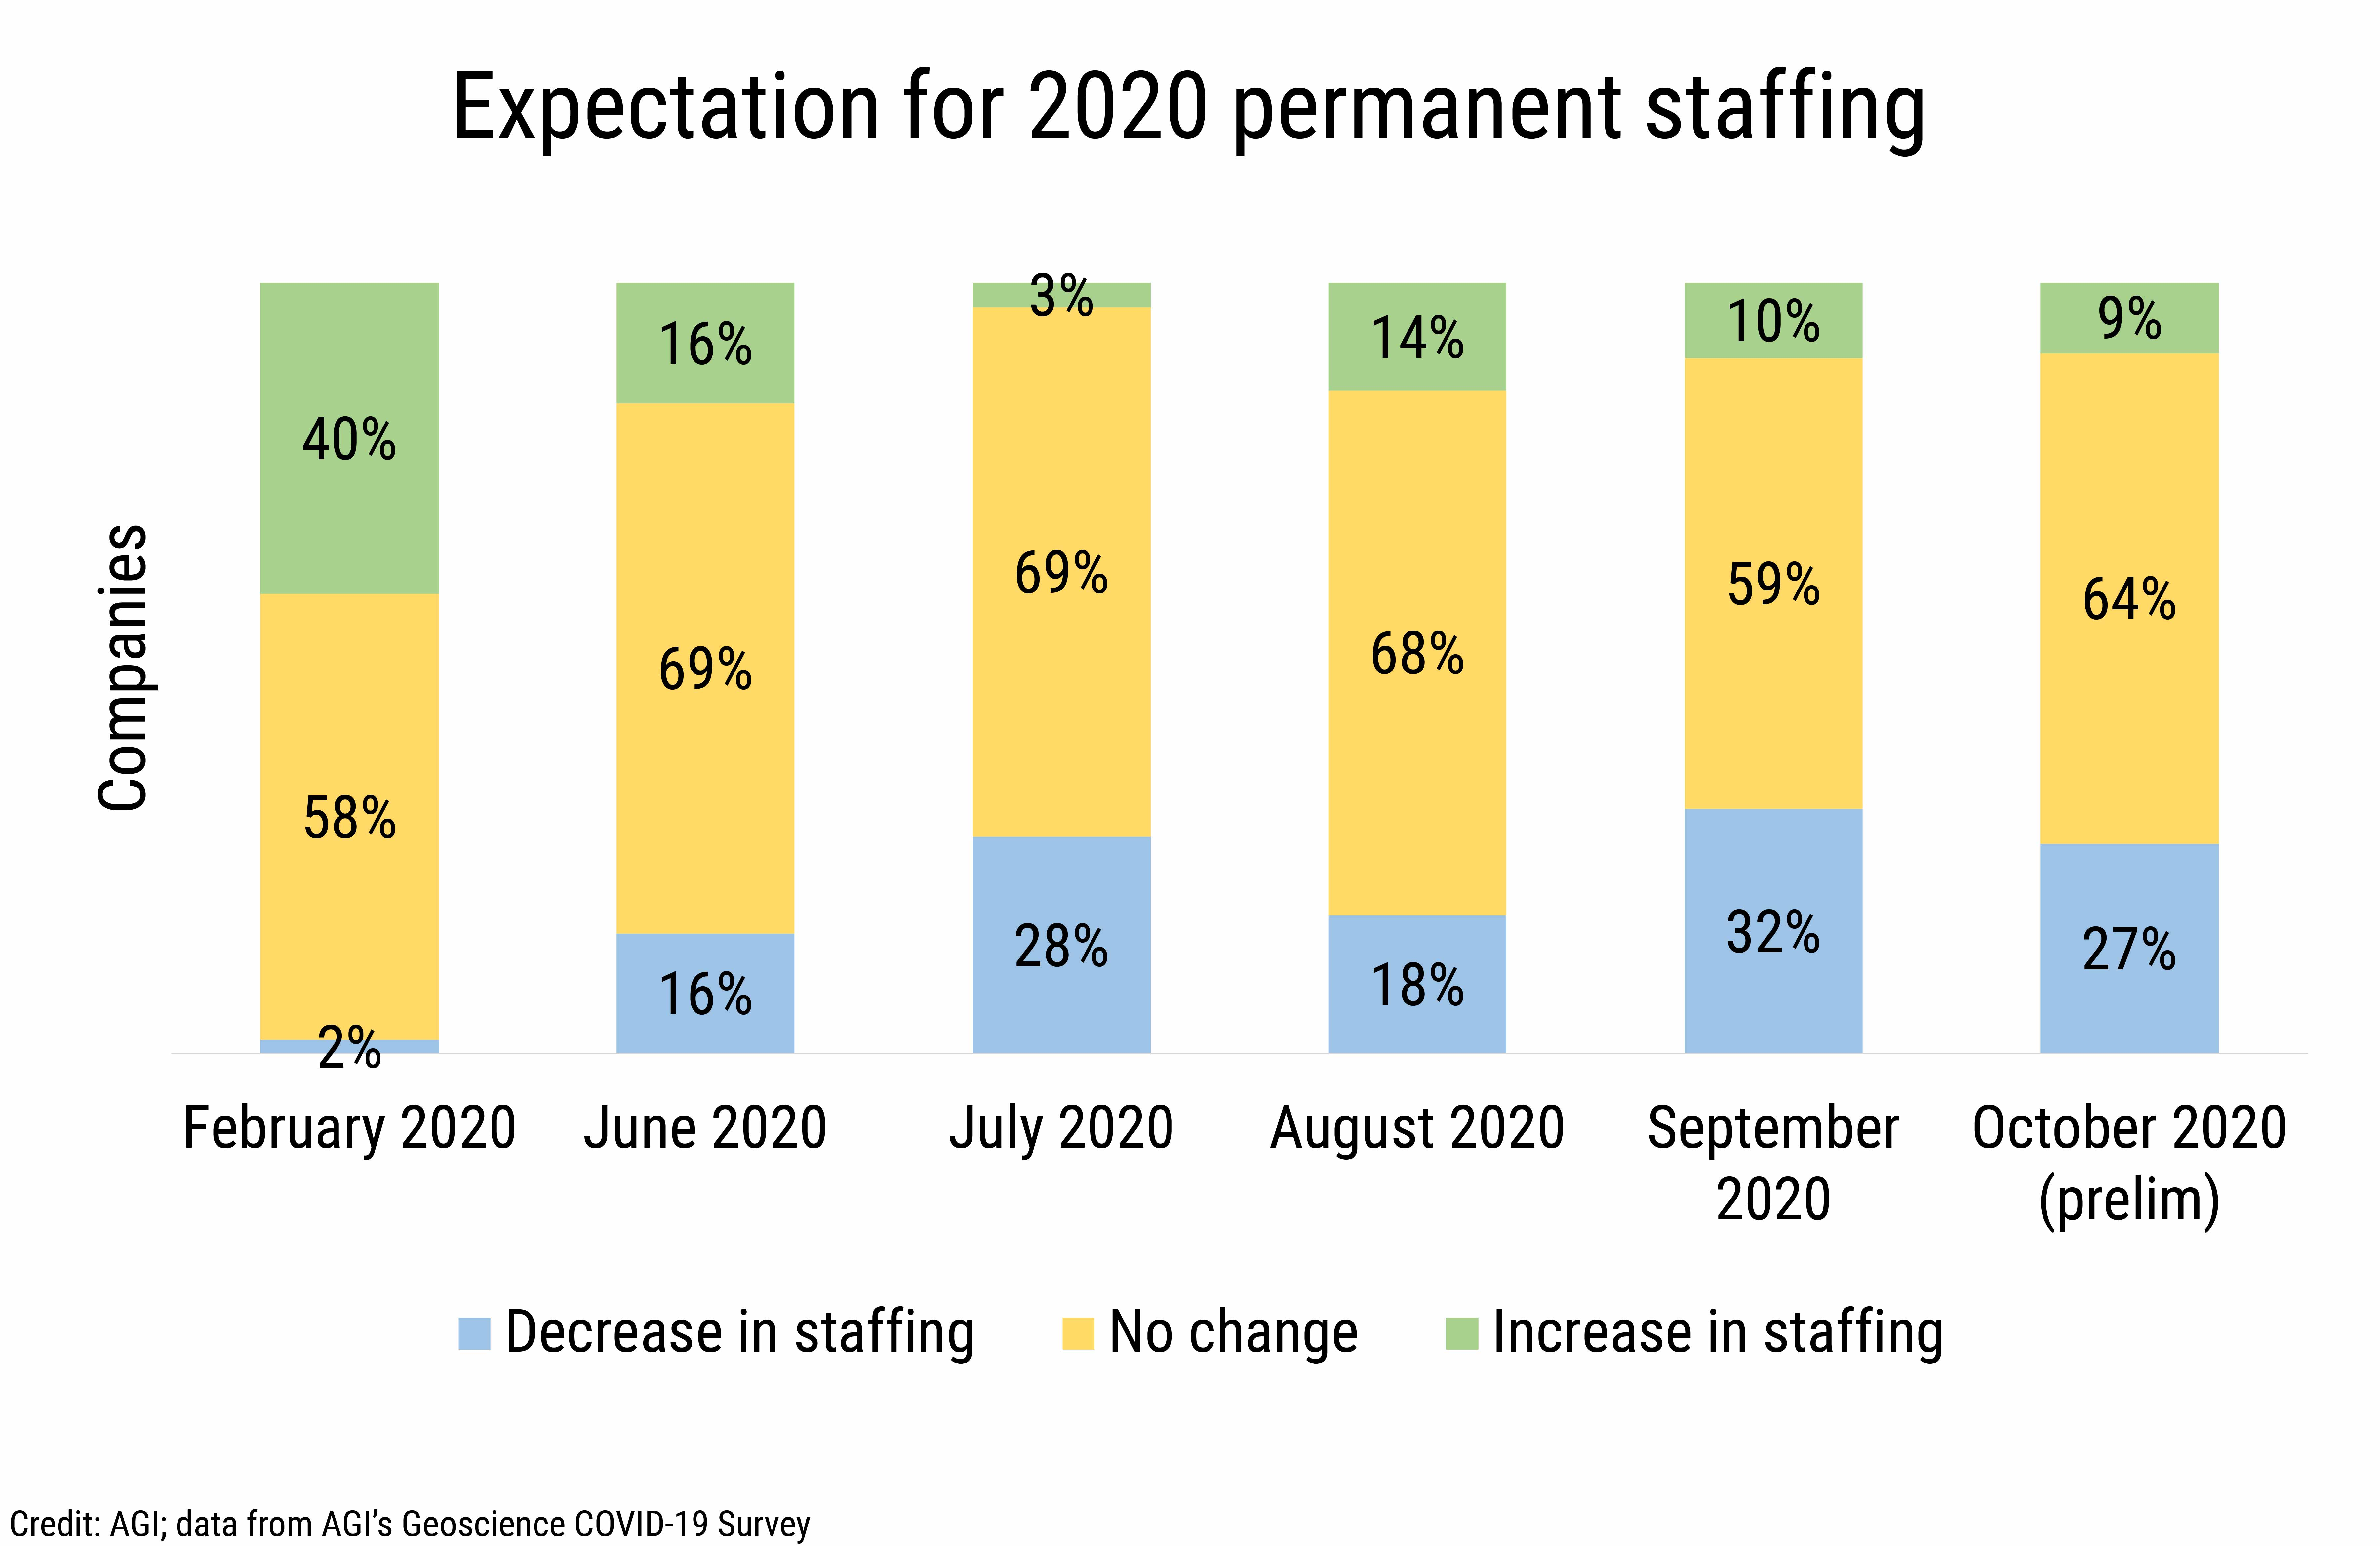 DB_2020-027 chart 04:  Expectation for 2020 permanent staffing (Credit: AGI; data from AGI's Geoscience COVID-19 Survey)